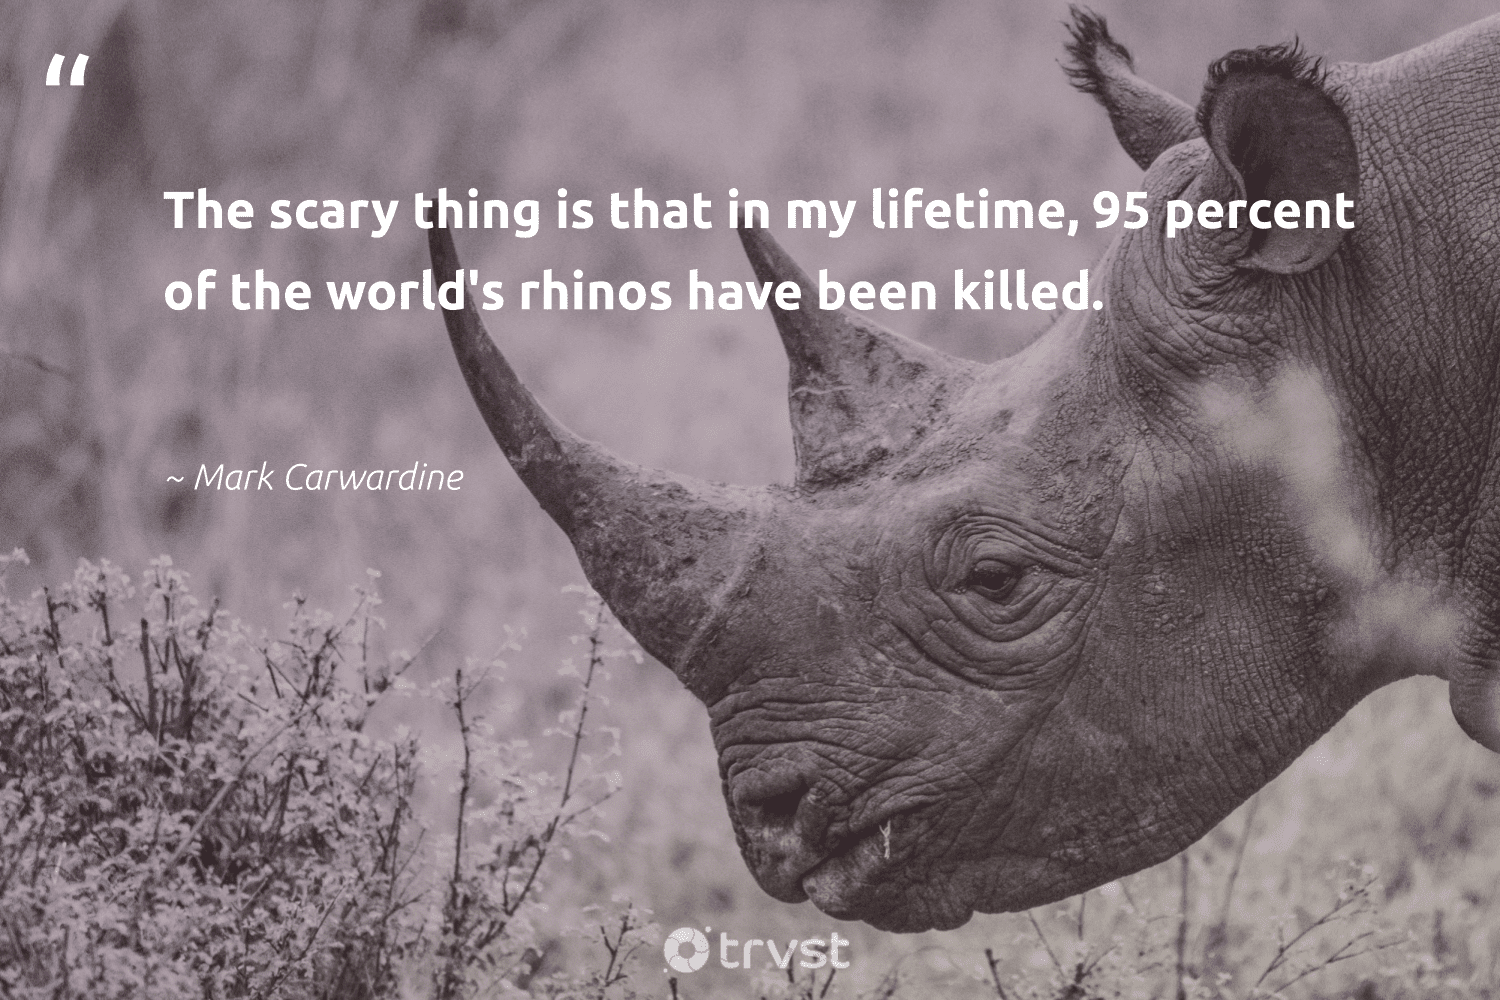 """""""The scary thing is that in my lifetime, 95 percent of the world's rhinos have been killed.""""  - Mark Carwardine #trvst #quotes #ourplanetdaily #socialimpact #rhino #impact #bigfive #dogood #animalphotography #socialchange #amazingworld #collectiveaction"""